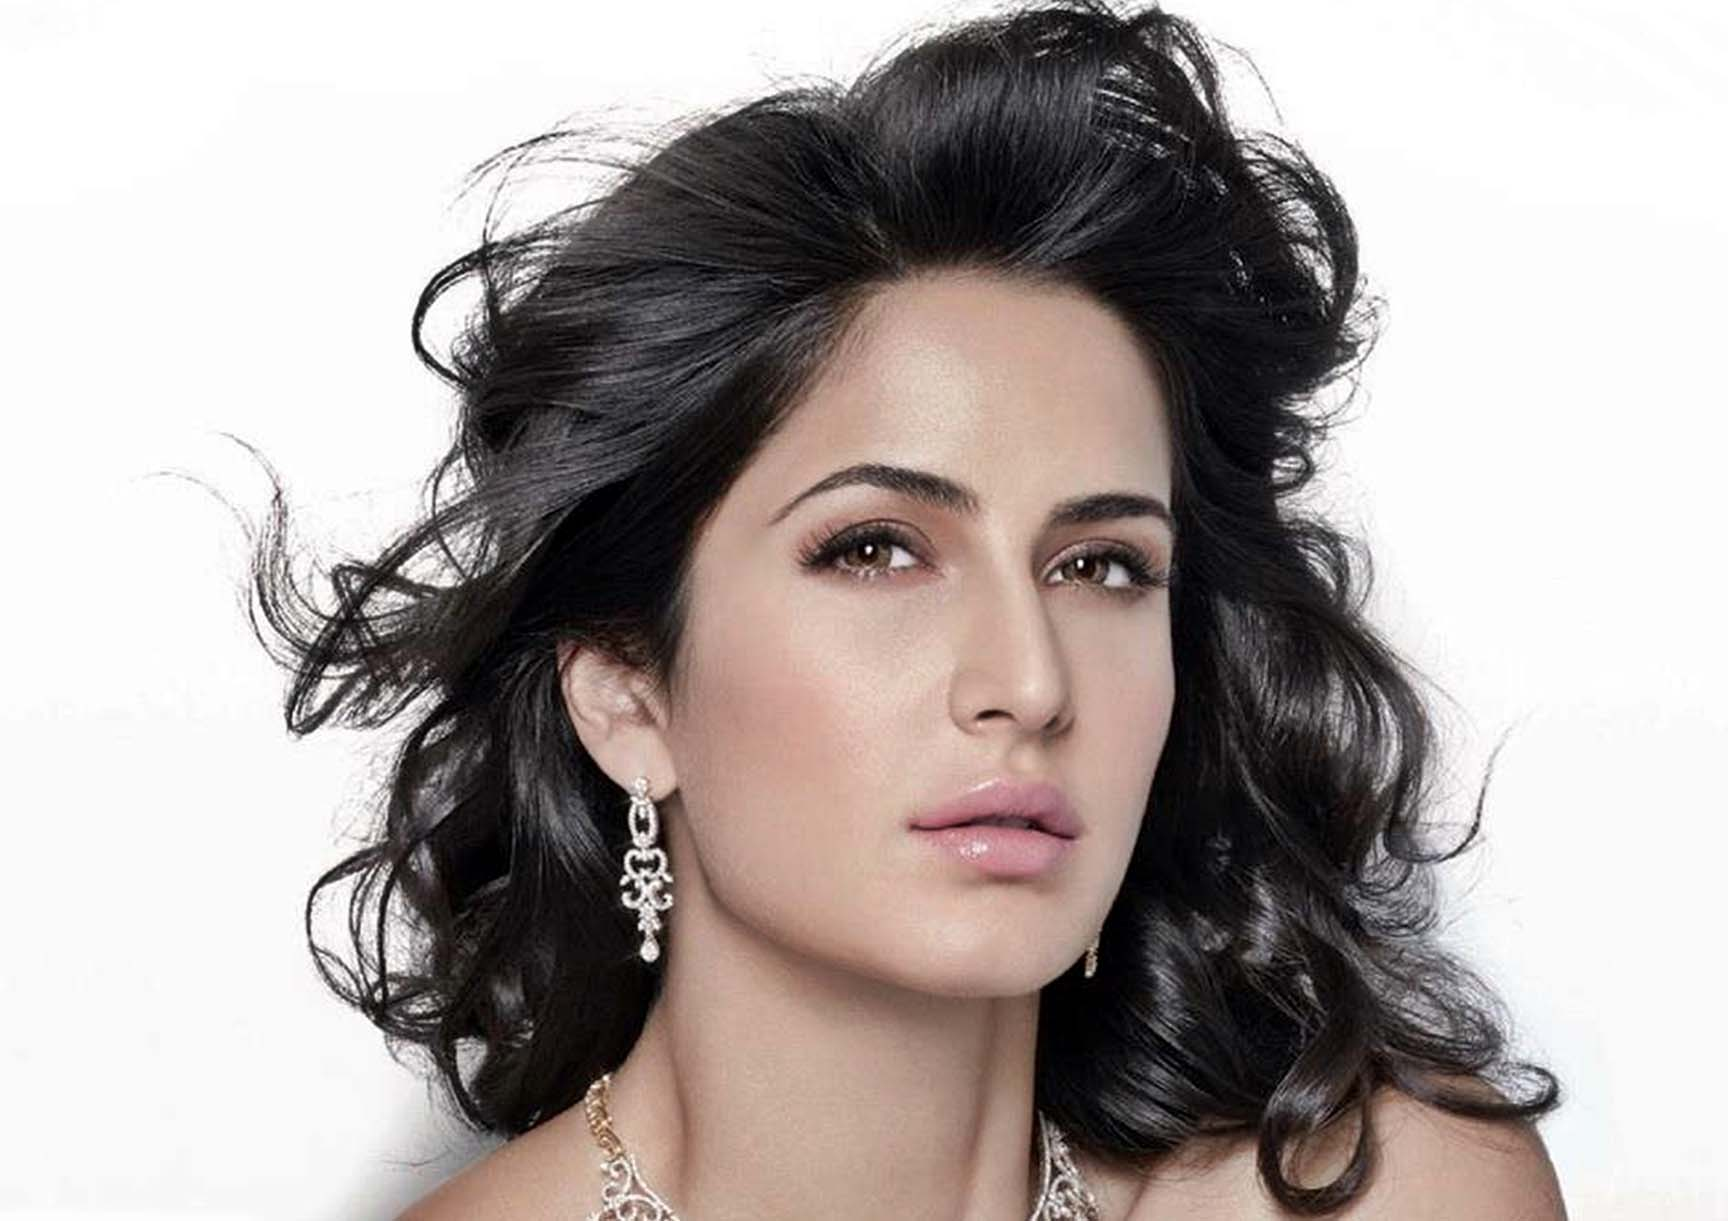 Katrina Kaif Wallpapers 2017 Wallpaper Cave